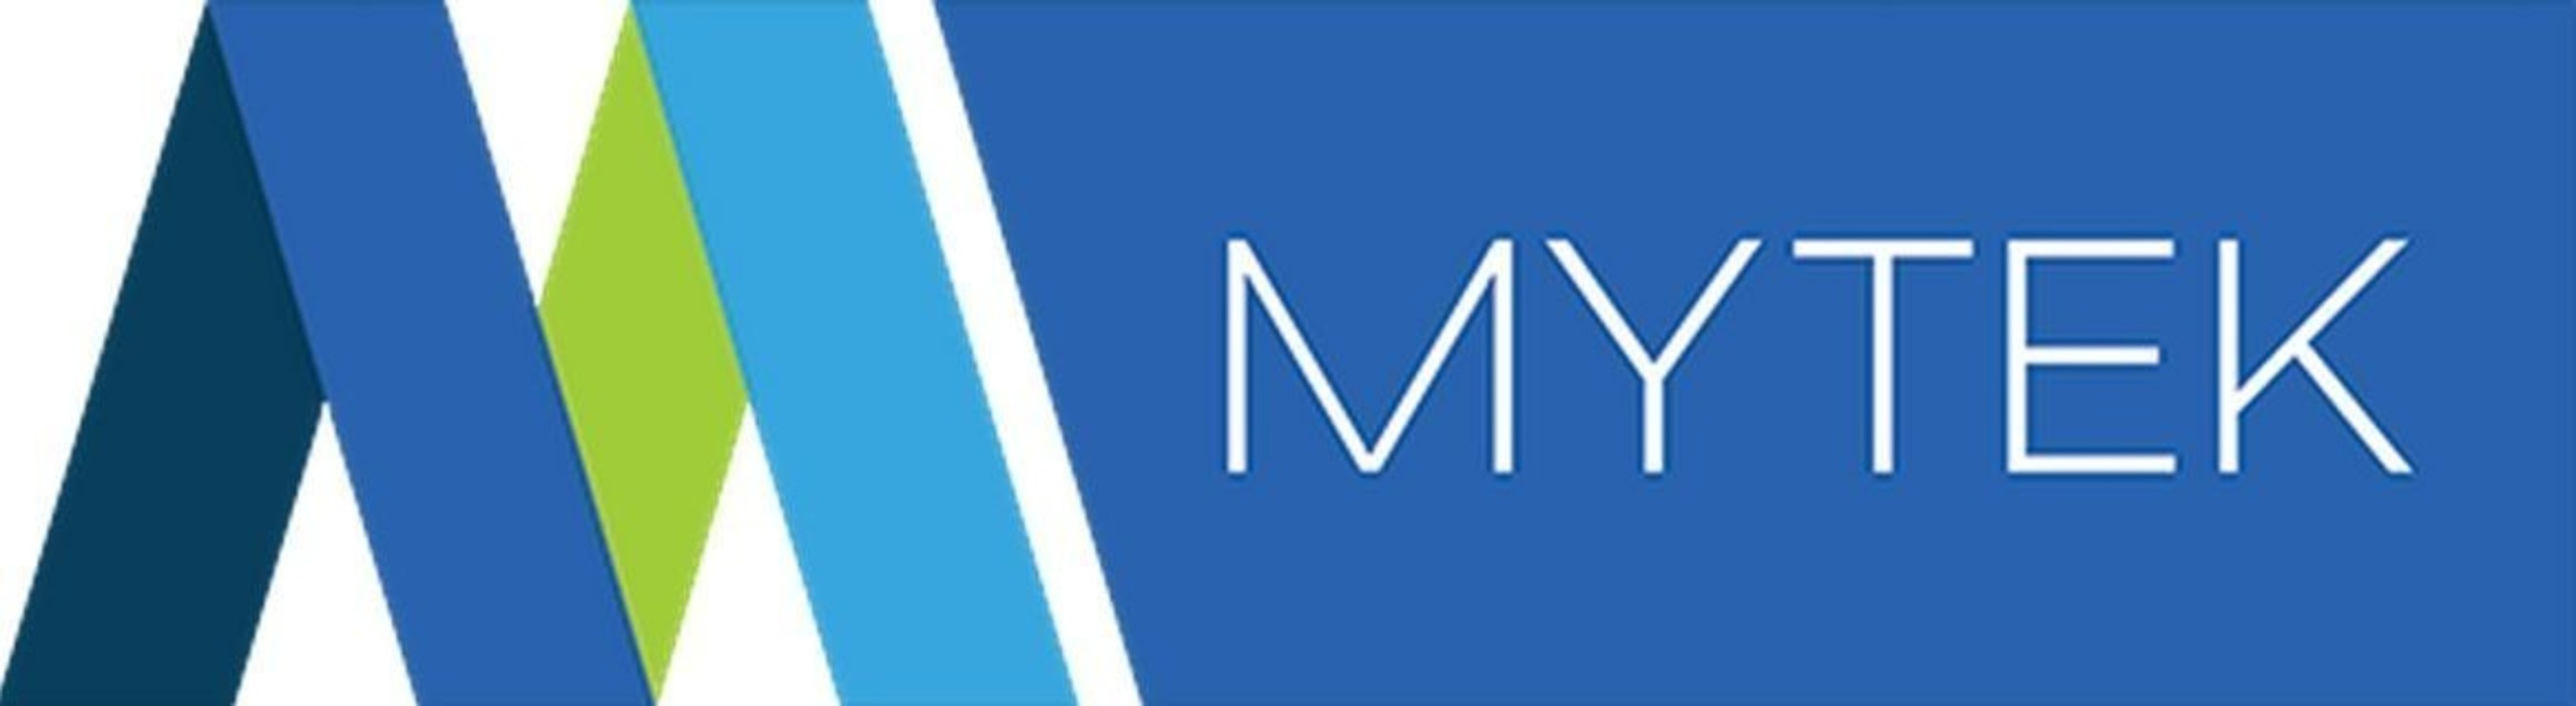 Mytek Helps Customers Understand Tax Benefits Associated with the Section 179 Deduction